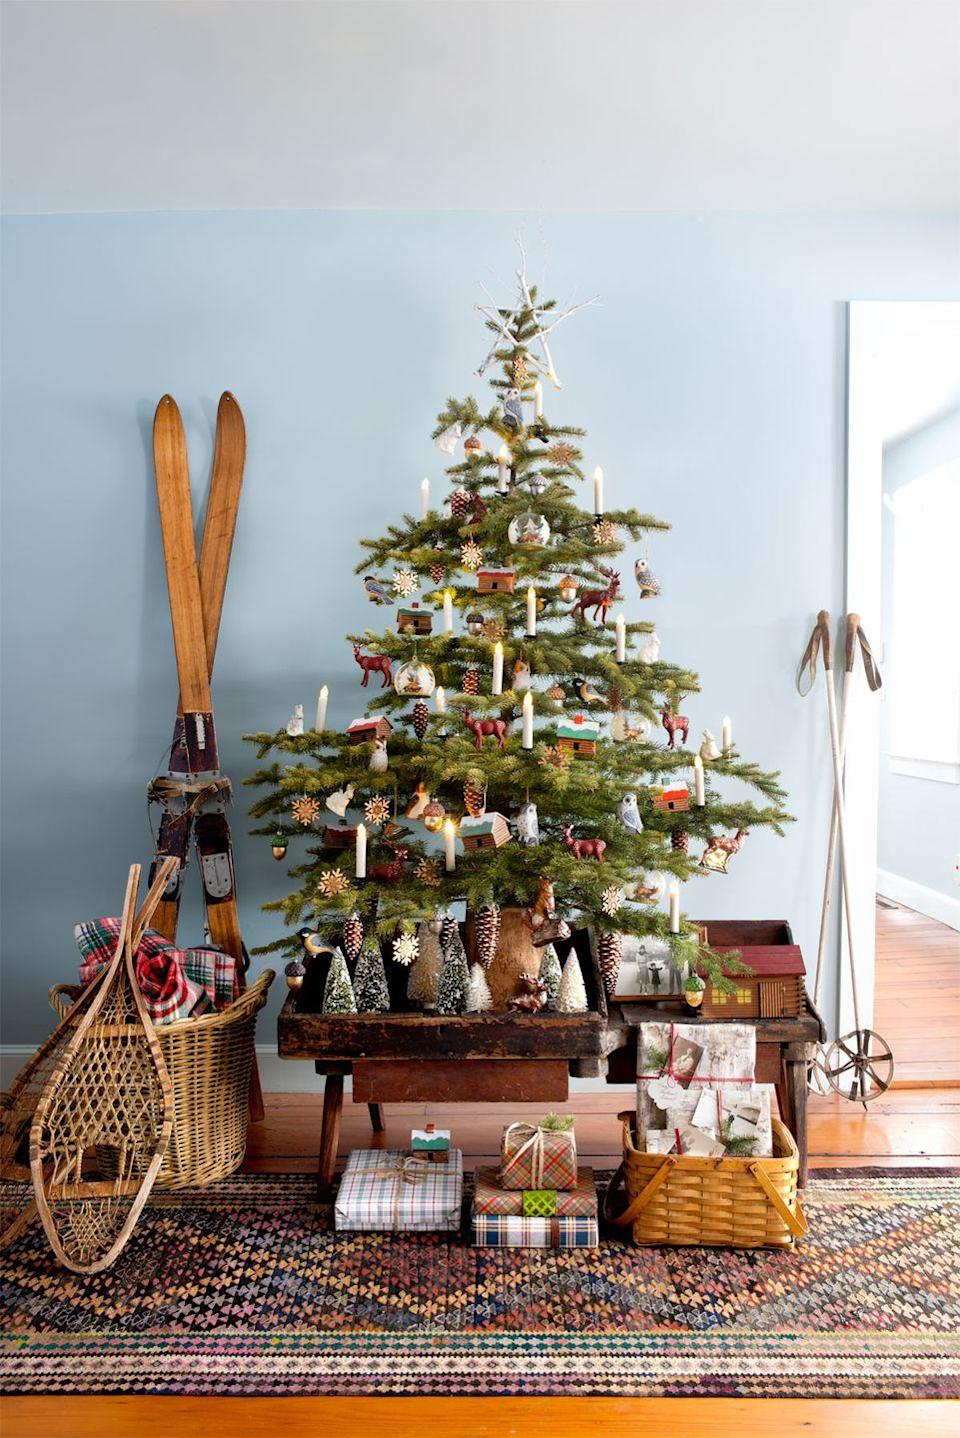 "<p>A cozy Christmas in the country requires (battery-operated) candles plus wooden ornaments. Round out the scene with a pair of old-fashioned snowshoes and bottle-brush trees in place of a skirt. </p><p>See more at <a href=""http://www.countryliving.com/home-design/decorating-ideas/tips/g1251/trim-christmas-trees-1208"" rel=""nofollow noopener"" target=""_blank"" data-ylk=""slk:Country Living"" class=""link rapid-noclick-resp"">Country Living</a>. </p><p><a class=""link rapid-noclick-resp"" href=""https://www.amazon.com/GiveU-Control-Christmas-Candles-Included/dp/B075F4RYK7/ref=sr_1_2?dchild=1&keywords=fake+christmas+tree+candles&qid=1597239824&s=home-garden&sr=1-2&tag=syn-yahoo-20&ascsubtag=%5Bartid%7C10057.g.505%5Bsrc%7Cyahoo-us"" rel=""nofollow noopener"" target=""_blank"" data-ylk=""slk:SHOP LIGHTS"">SHOP LIGHTS</a> <strong><em>Candle Clips, $19</em></strong></p>"